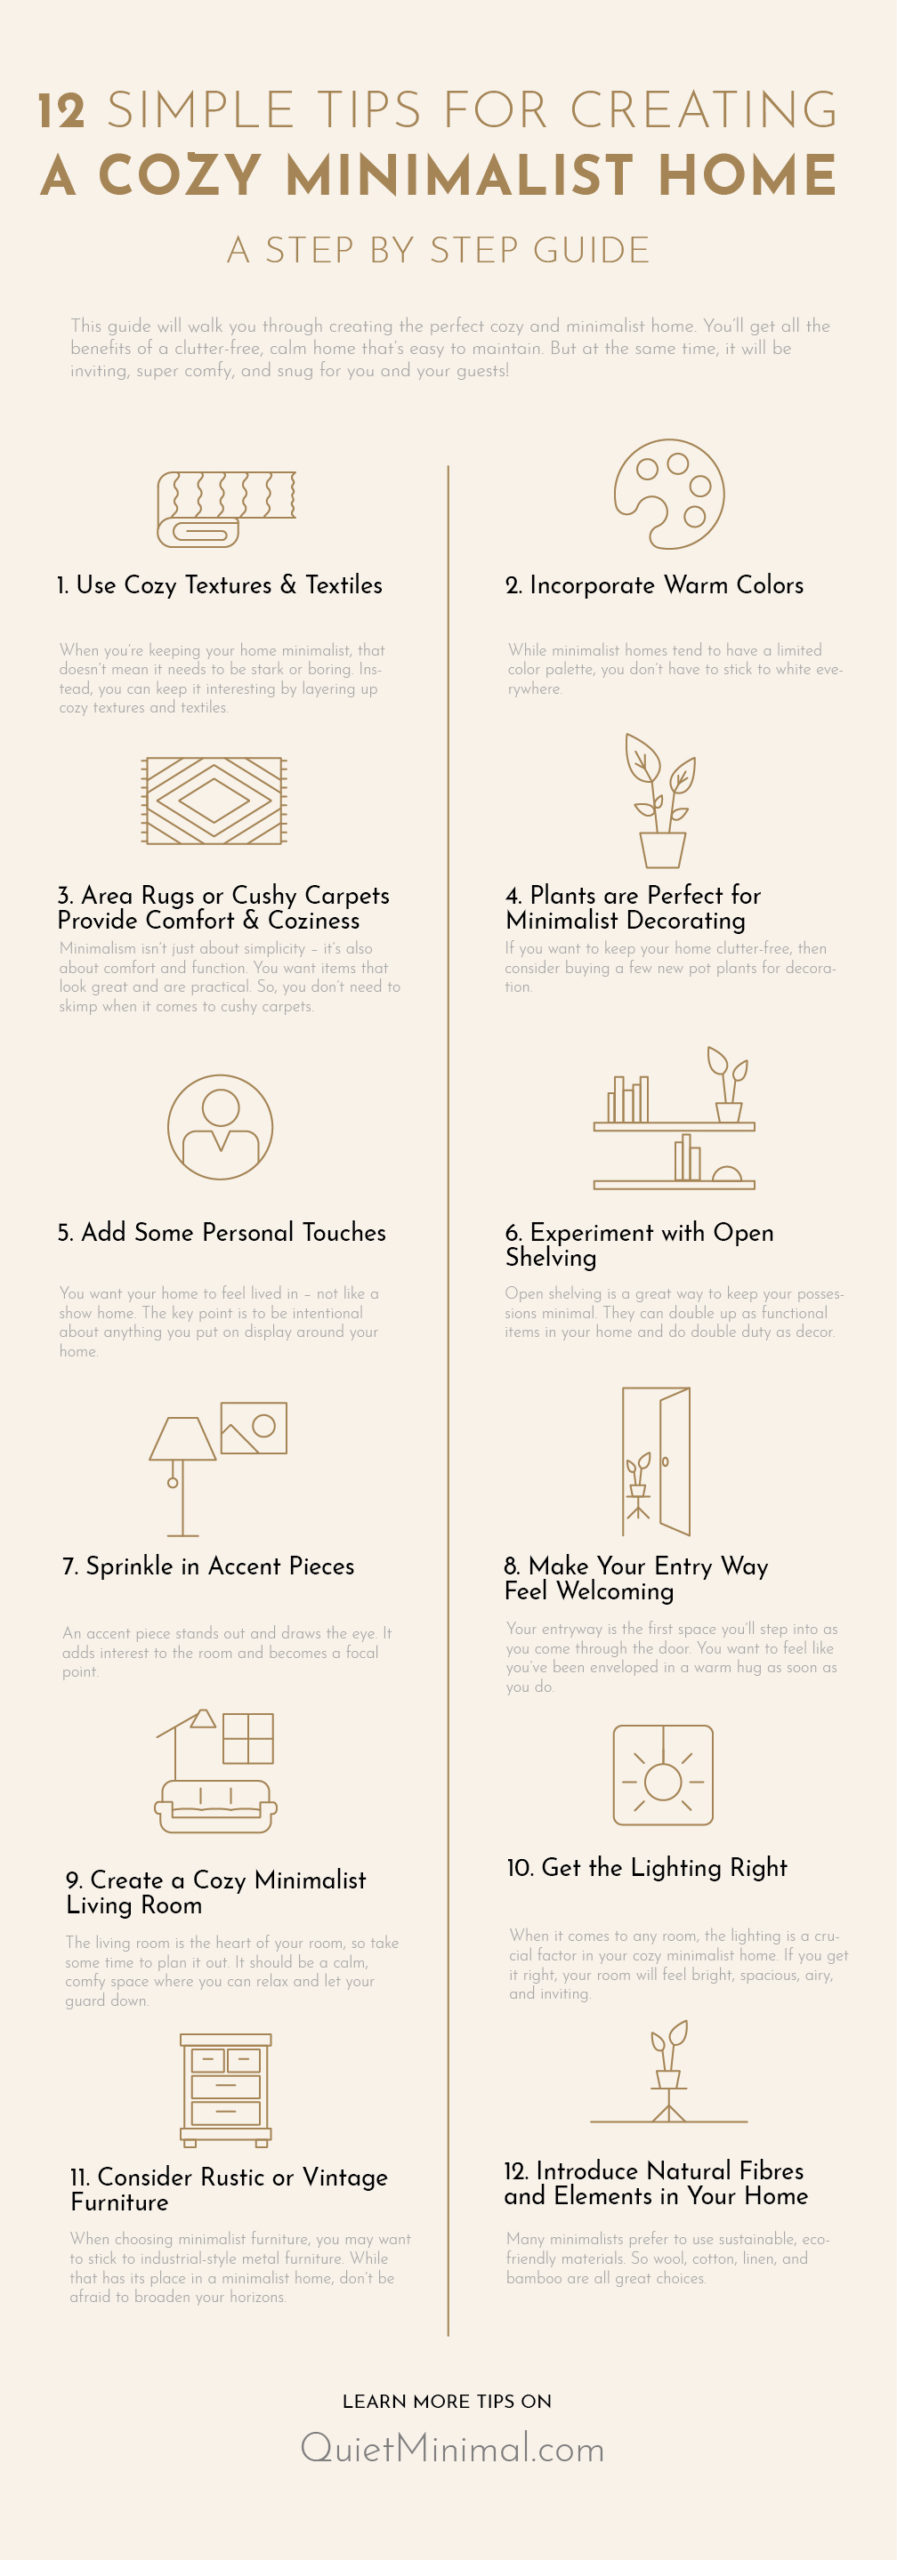 12 simple tips for creating a cozy minimalist home, a step by step guide